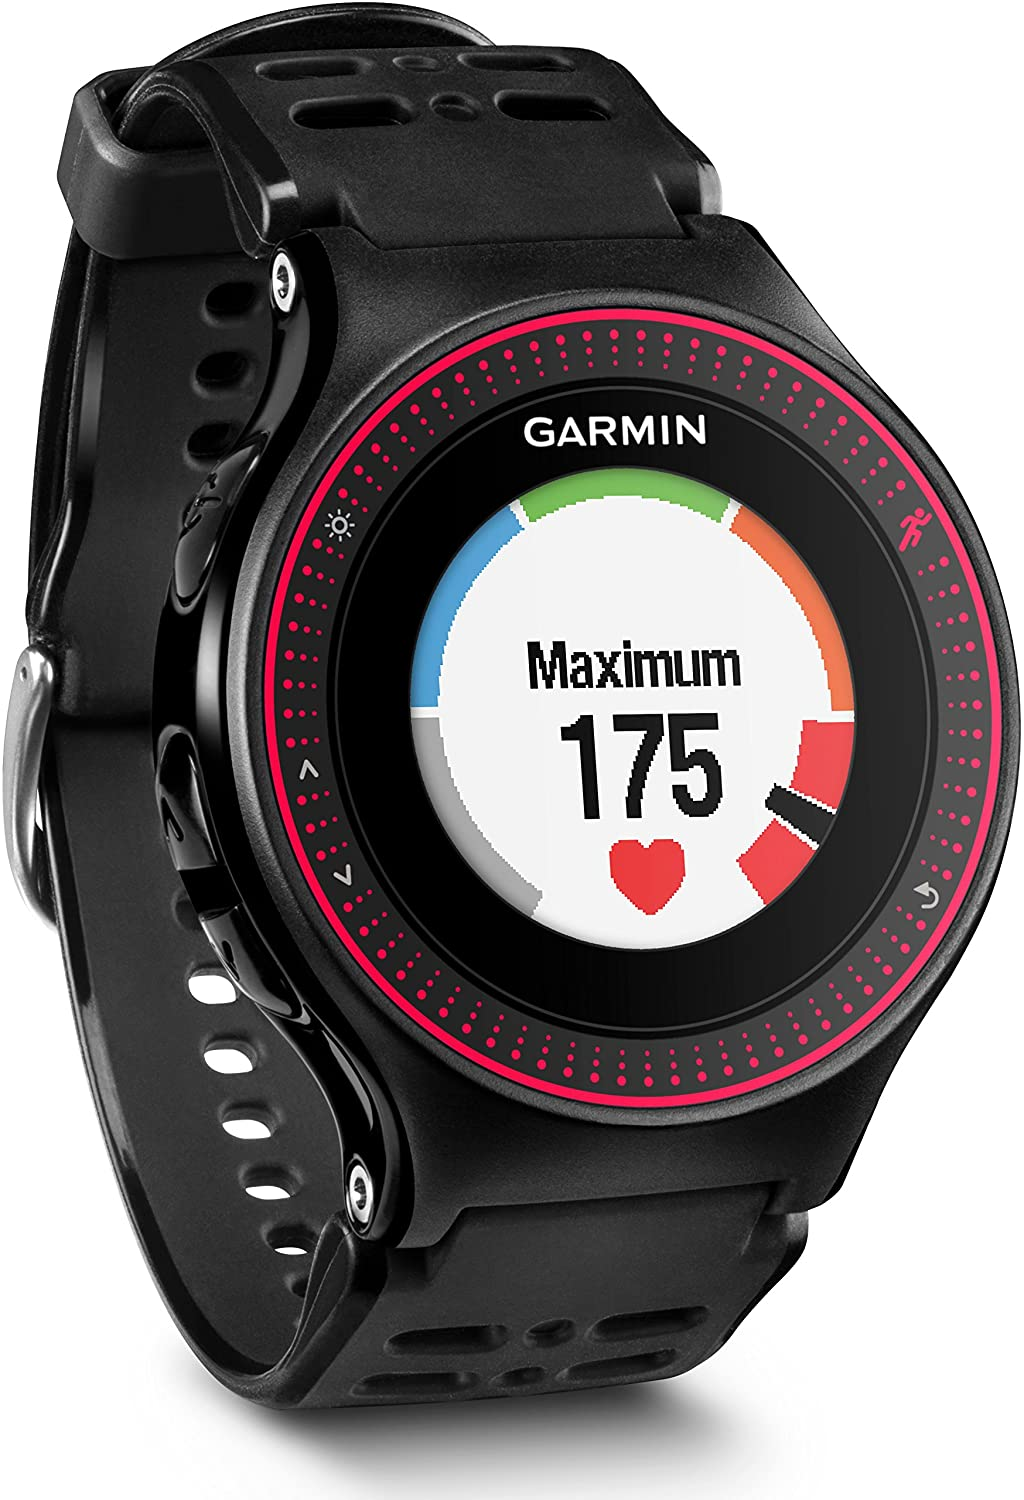 rate watch monitor uk with gps multisport forerunner co heart amazon garmin dp electronics watches